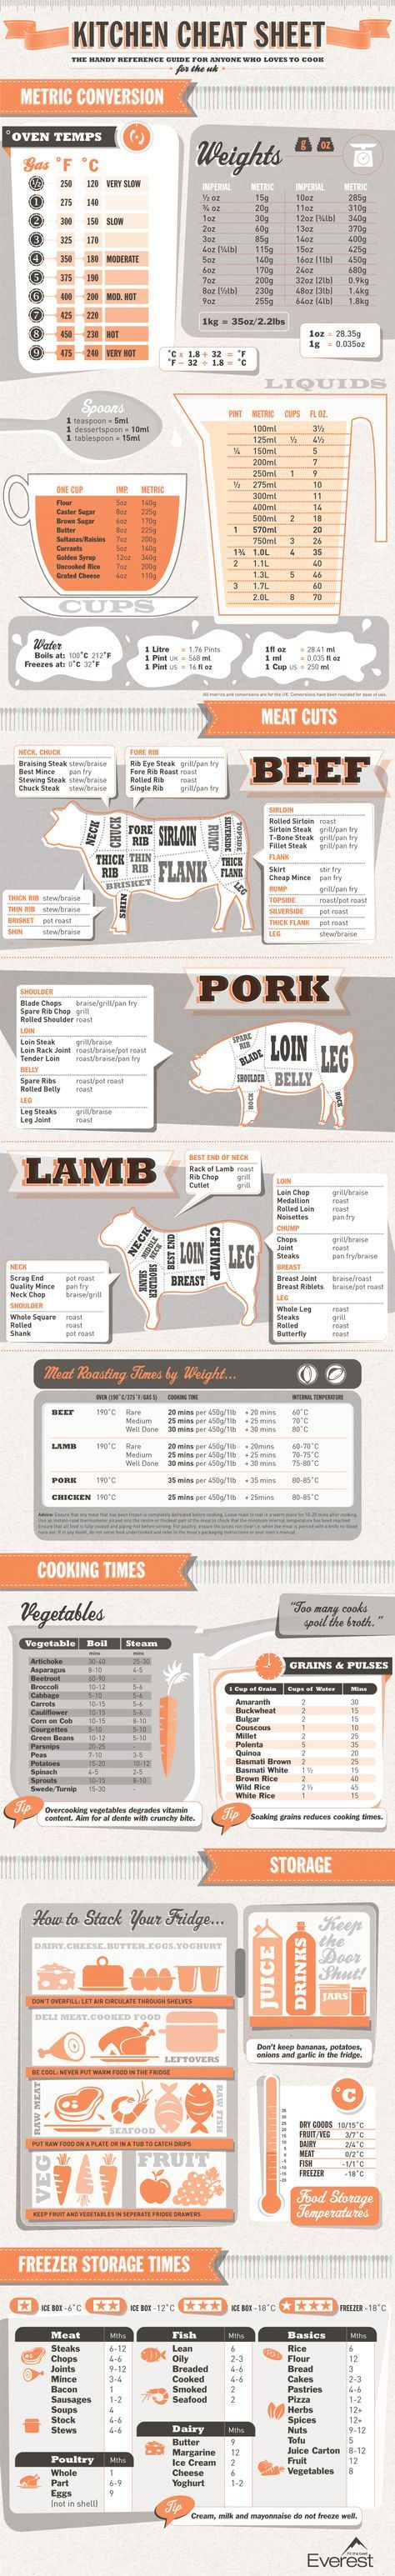 awesome kitchen resource - save it, print it & stick it on the fridge!